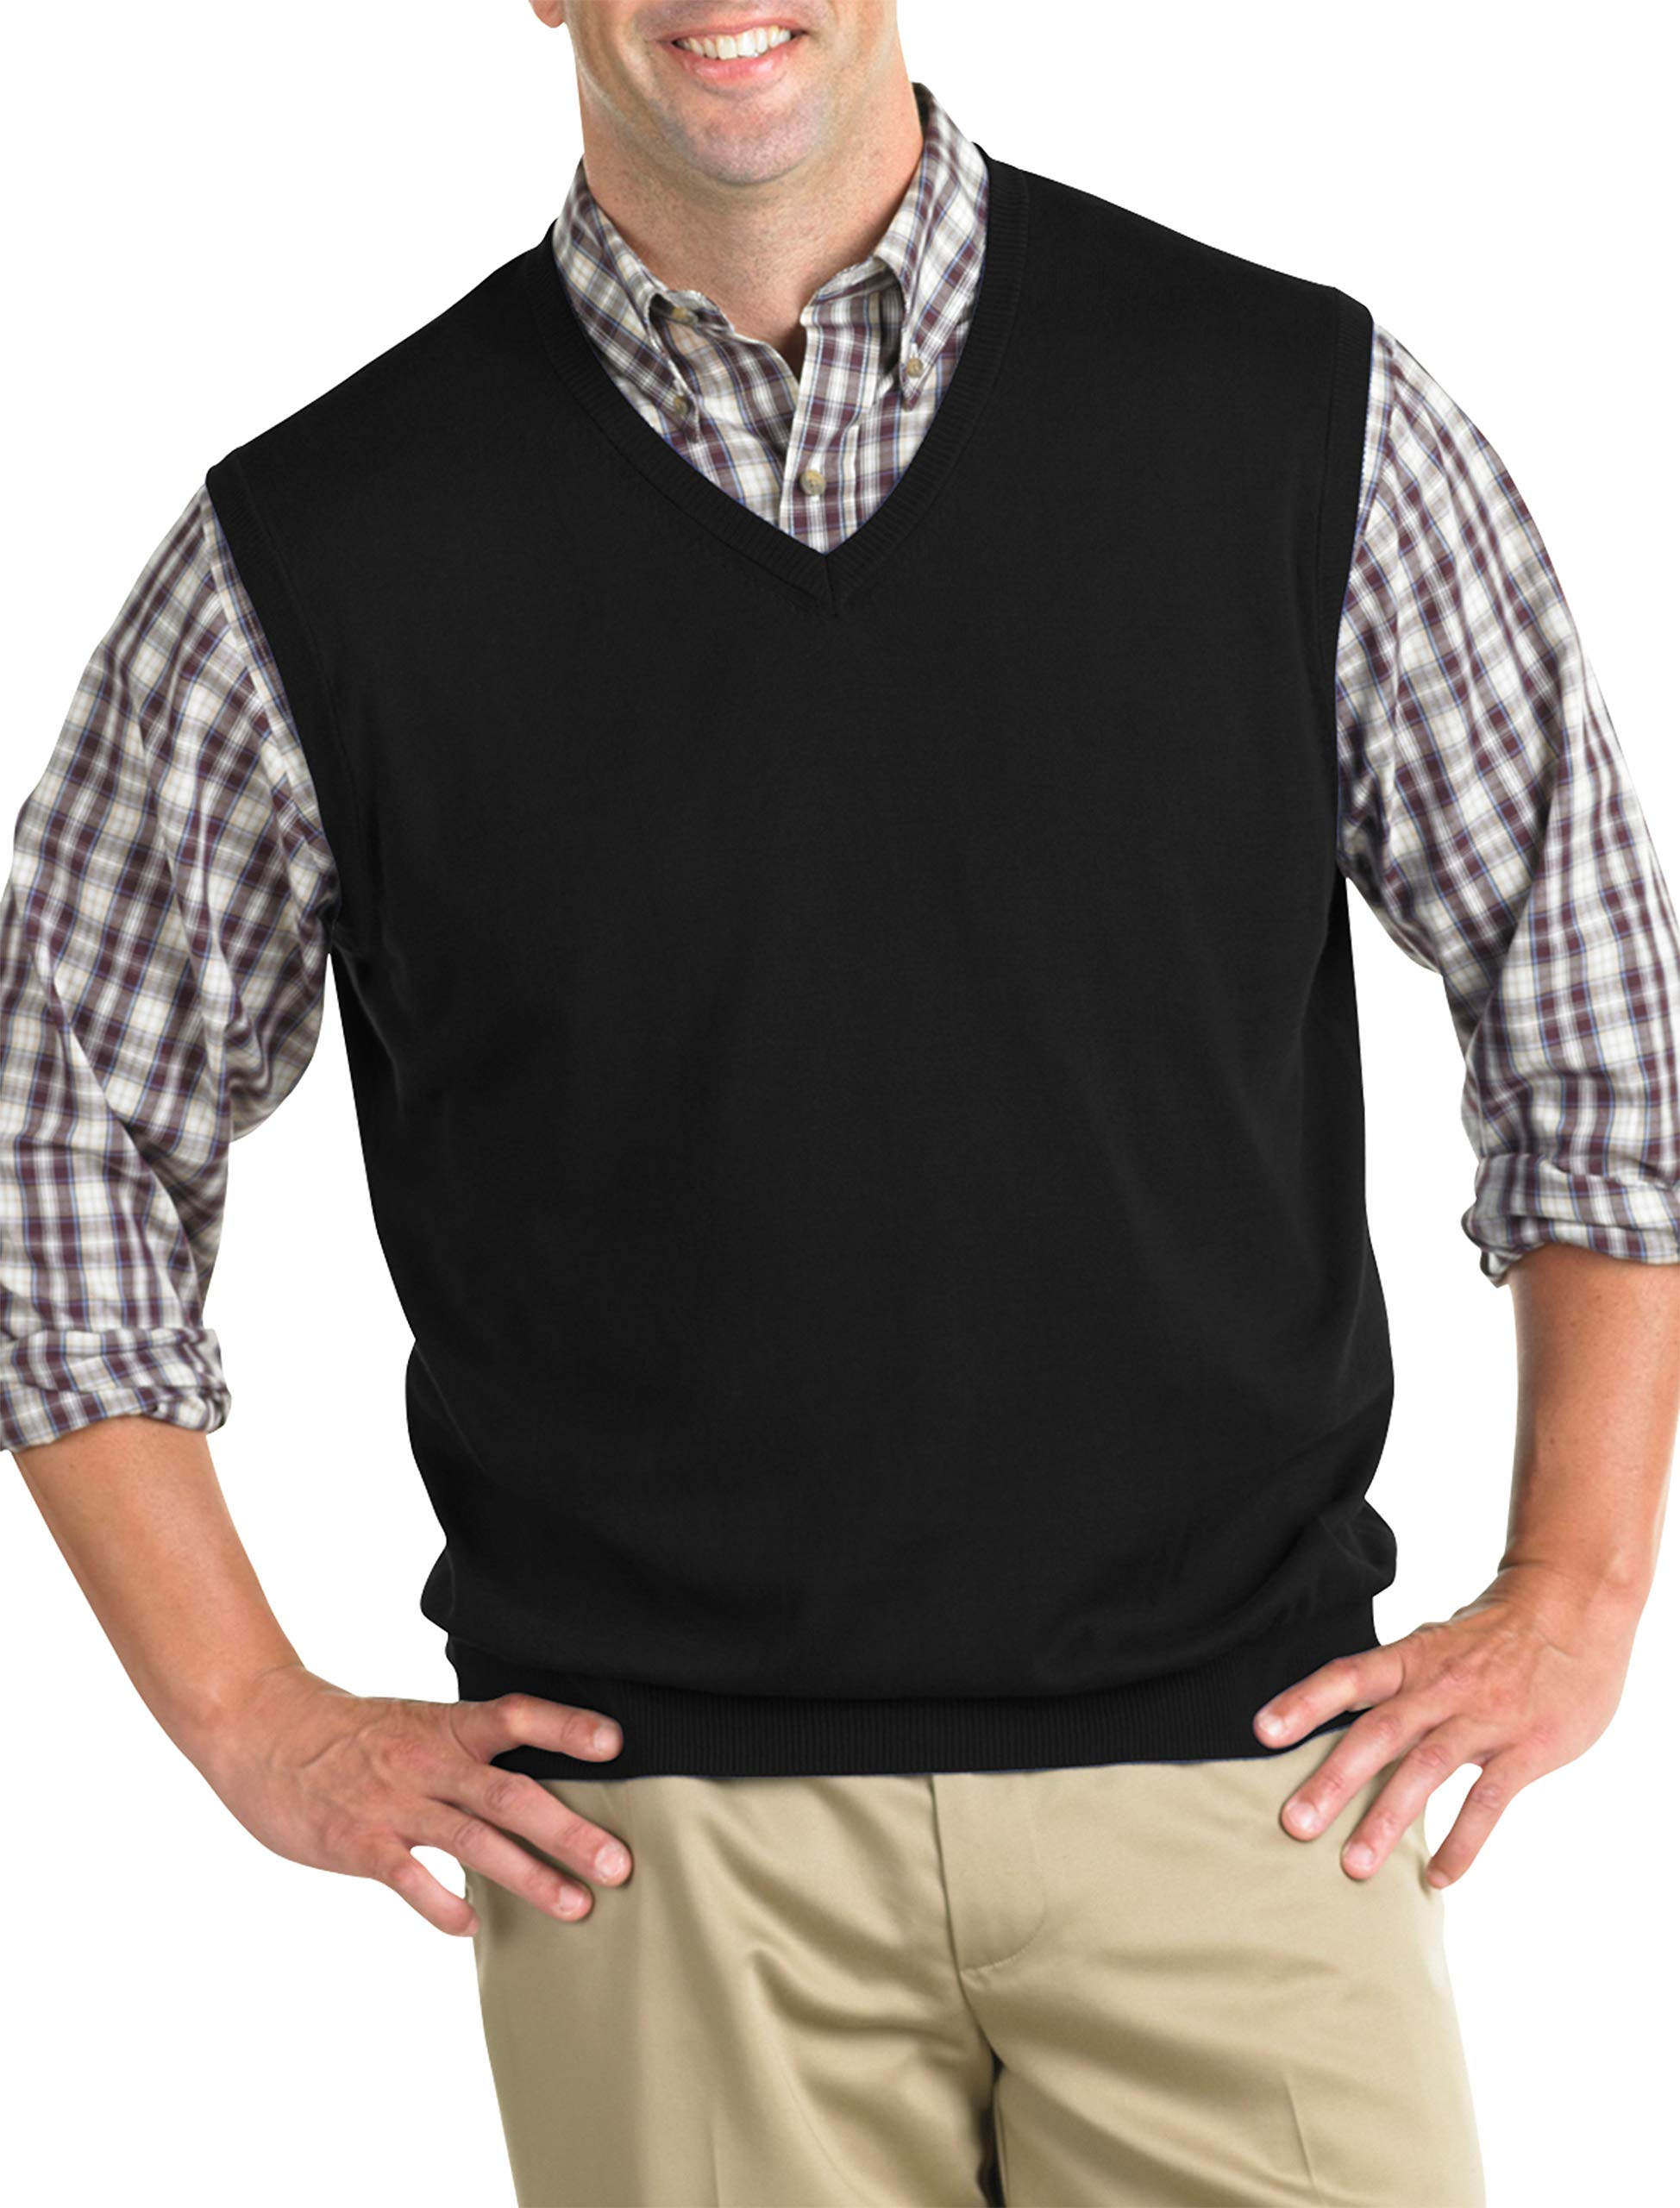 Harbor Bay by DXL Big and Tall V-Neck Sweater Vest by Harbor Bay